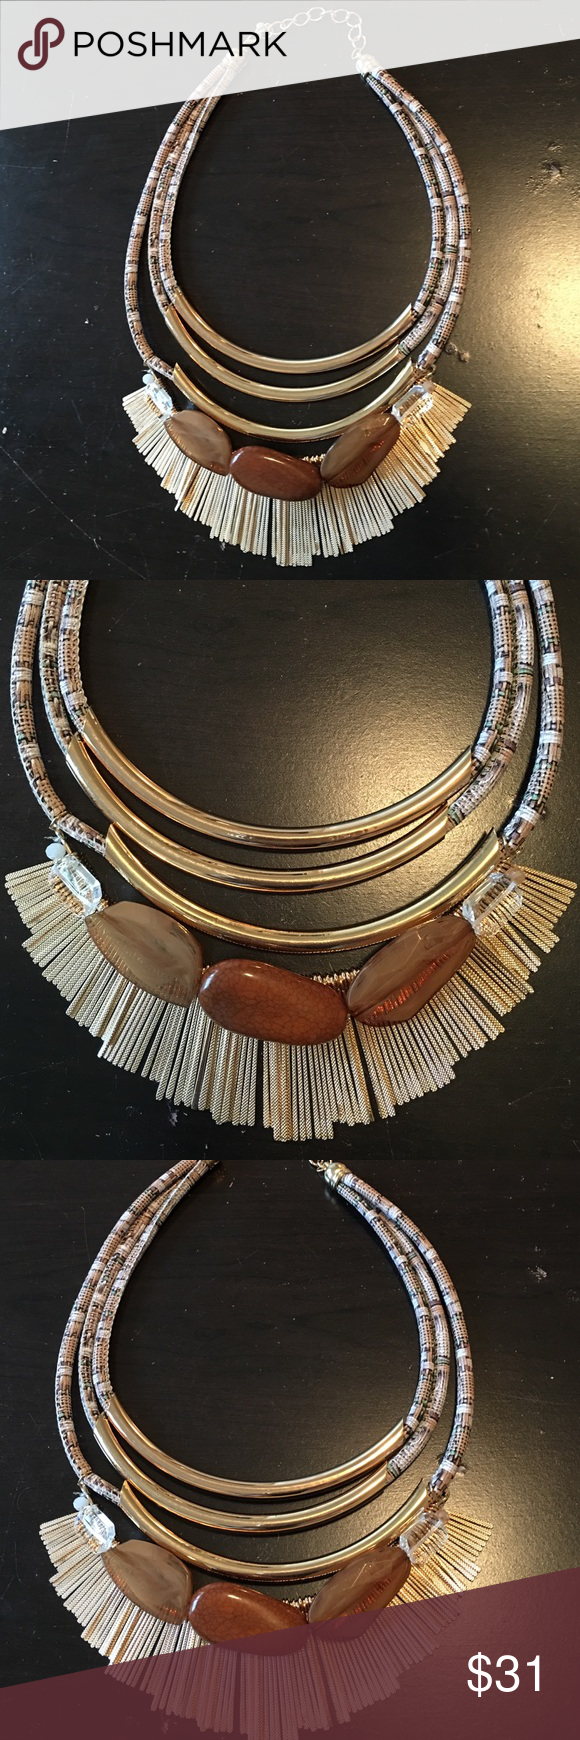 Necklace three strands. Beige / Brown Necklace three strands. Beige / Brown.  Three strands with gold tones and stones.   Never been worn Jewelry Necklaces